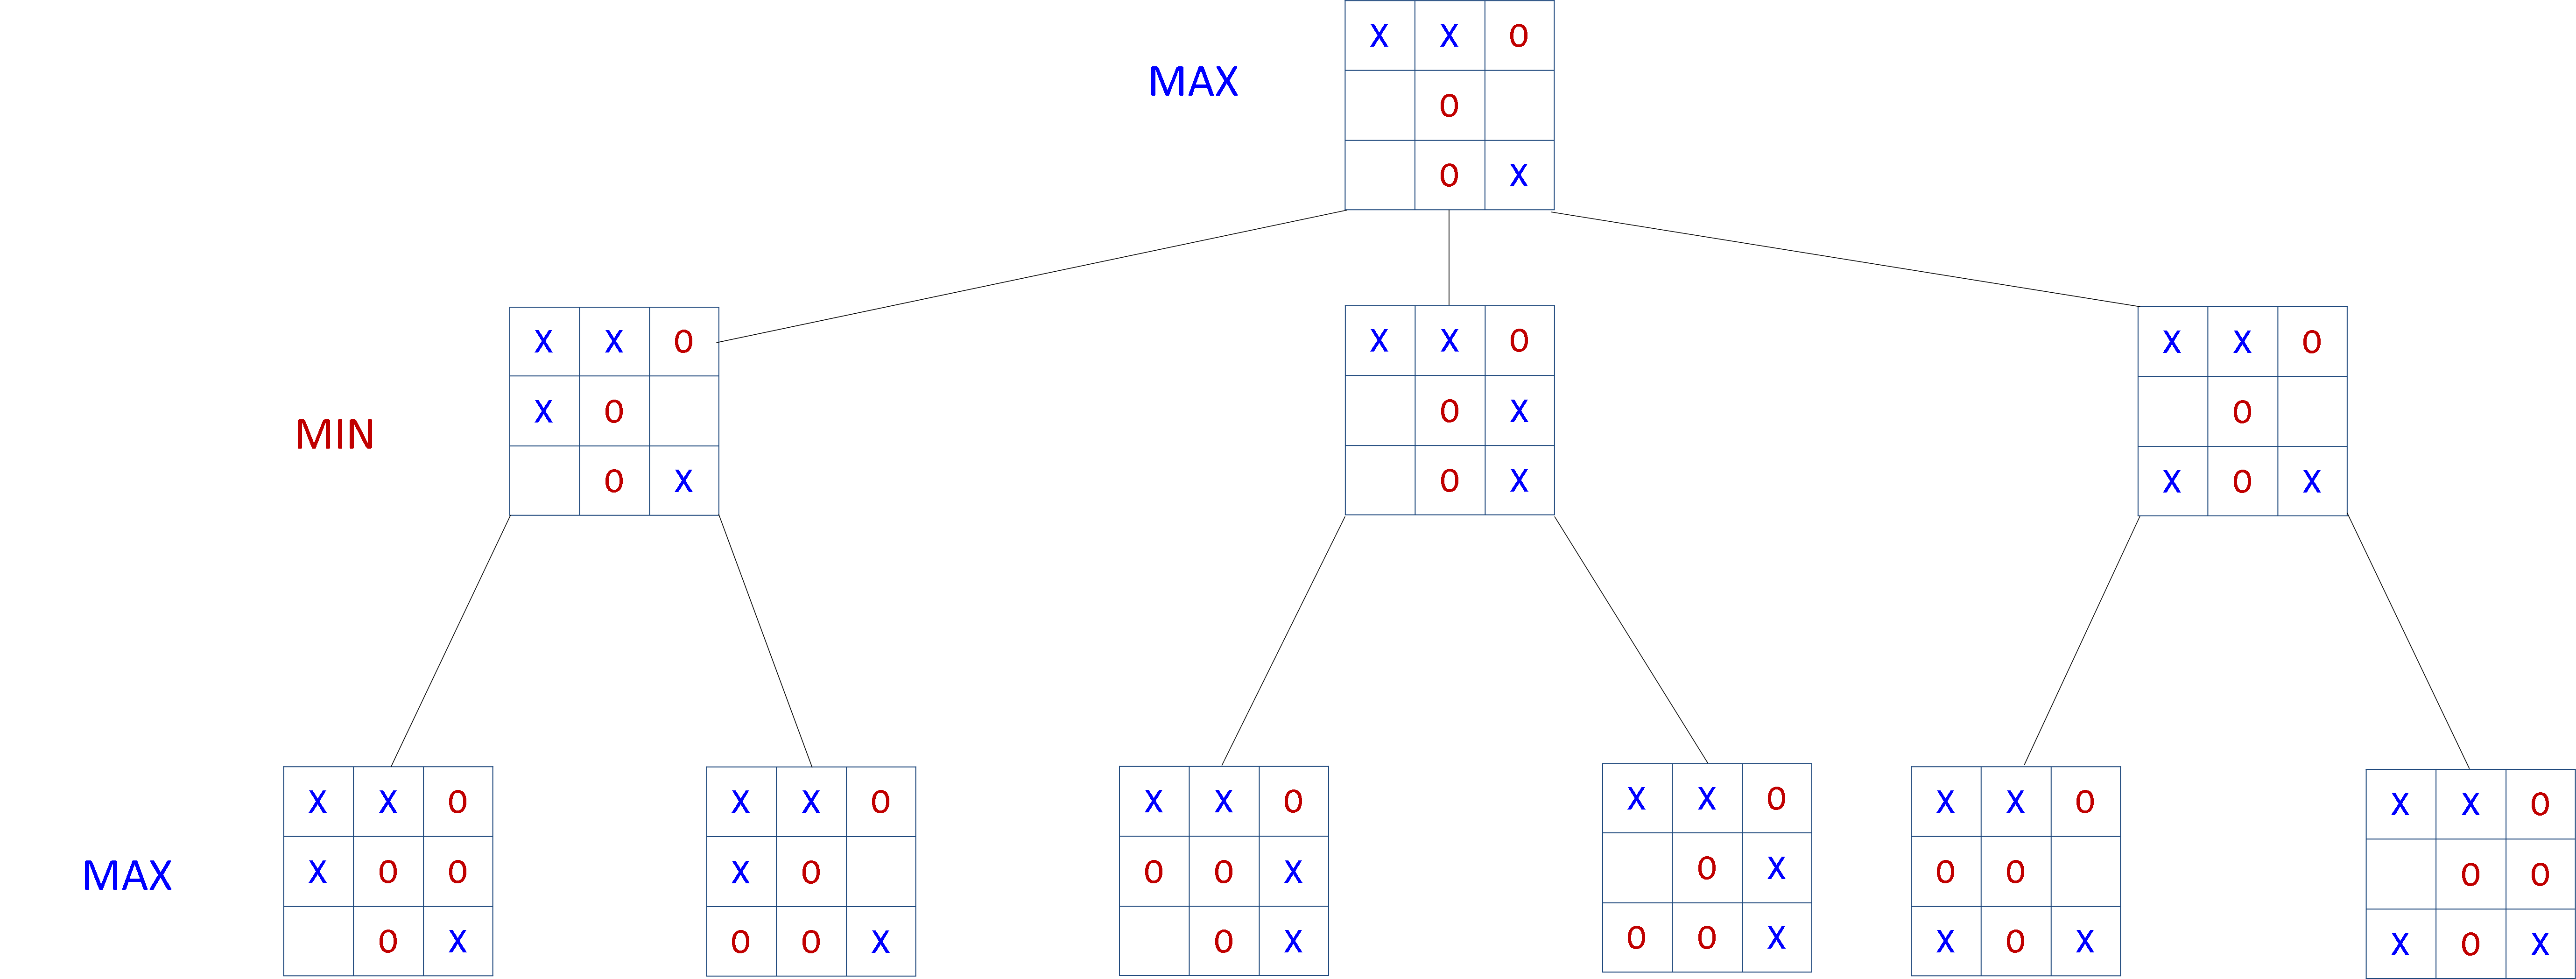 Tic-Tac-Toe: Simple Artificial Intelligence in C# ← this